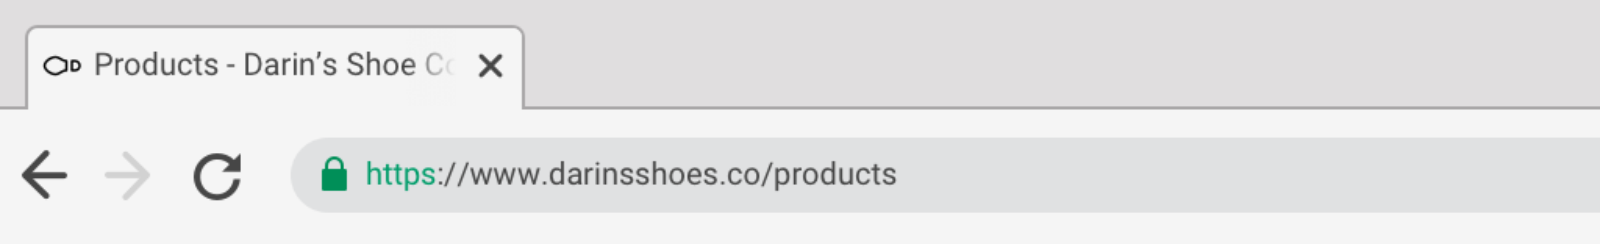 "Browser interface showing one tab labelled ""Products - Darin's Shoe Company"""